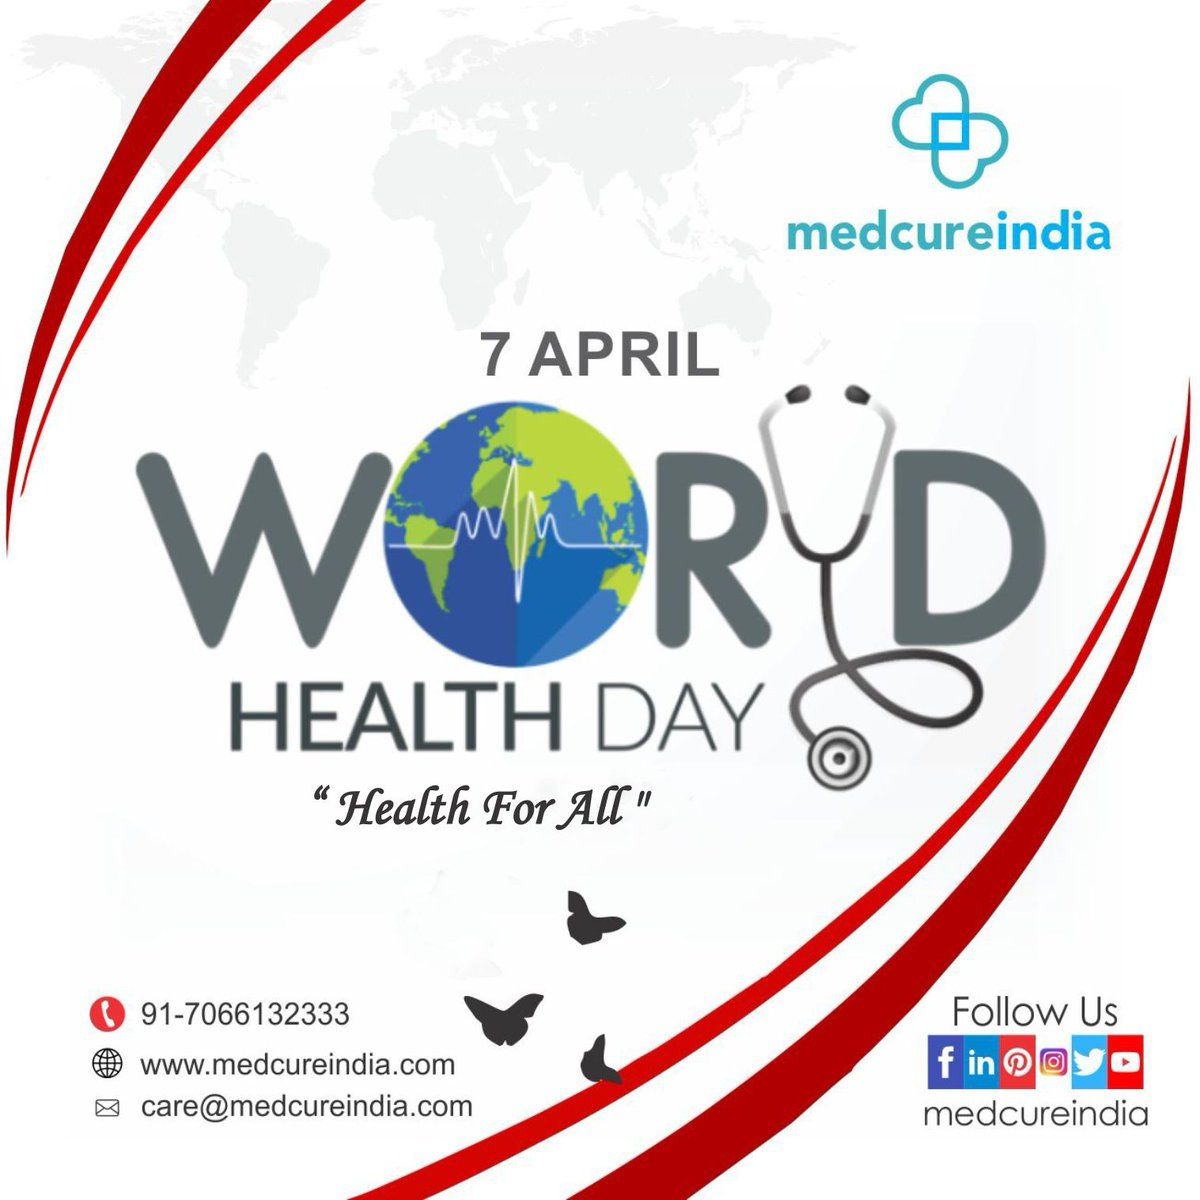 Medcureindia on in 2020 Health day, World health day